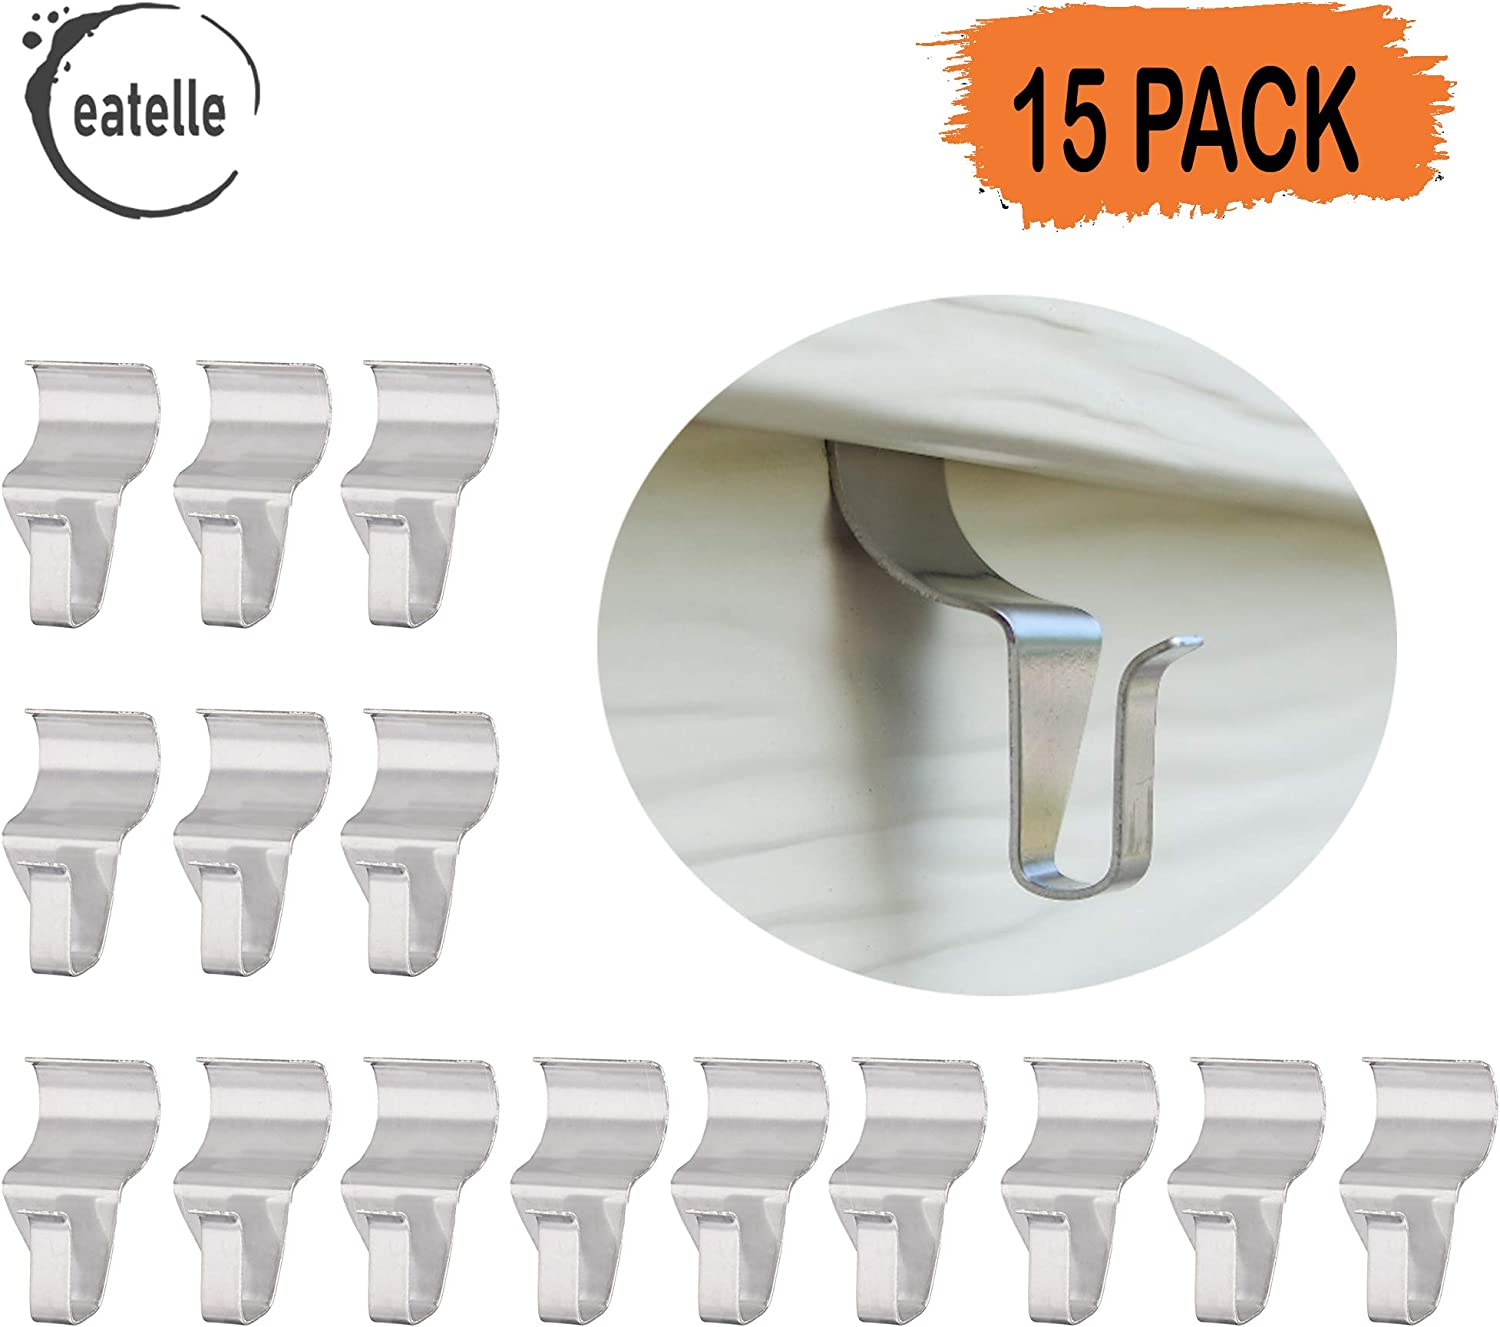 Eatelle No-Hole Needed Hooks Low Profile Vinyl Siding Clips for Hanging, Outdoor Hooks Heavy Duty Stainless Steel Outdoor Light Mailbox Planter Decorations Wreath Hanger Clips 15 Pack